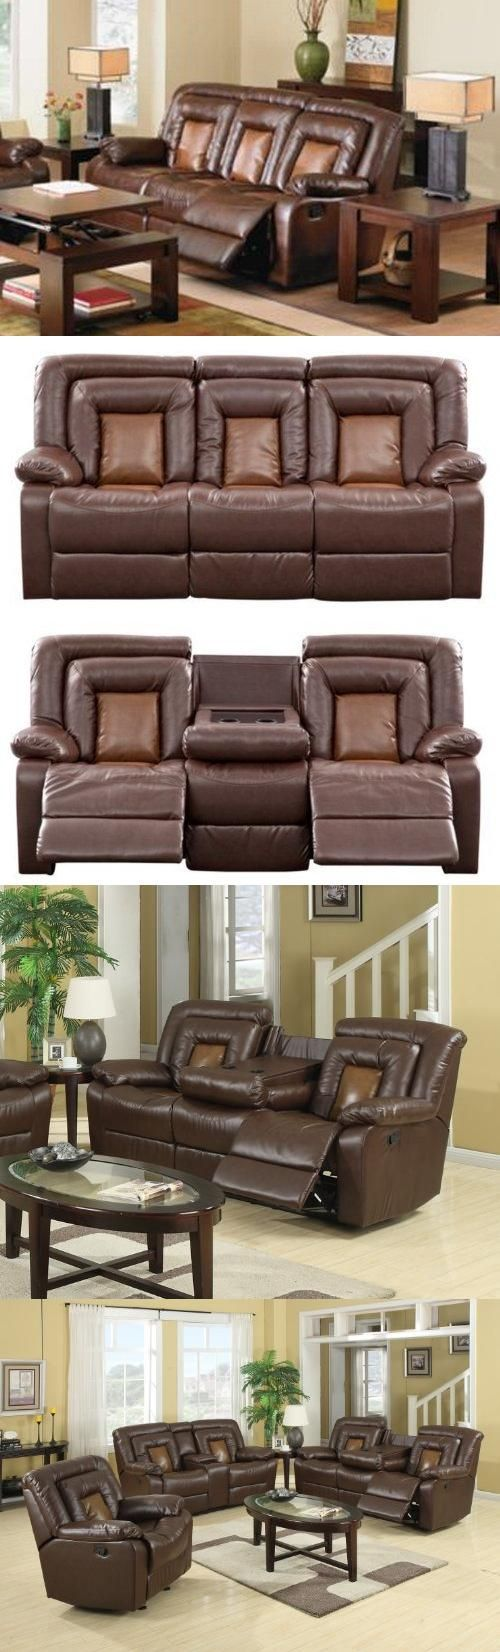 1000 Images About Couches On Pinterest Reclining